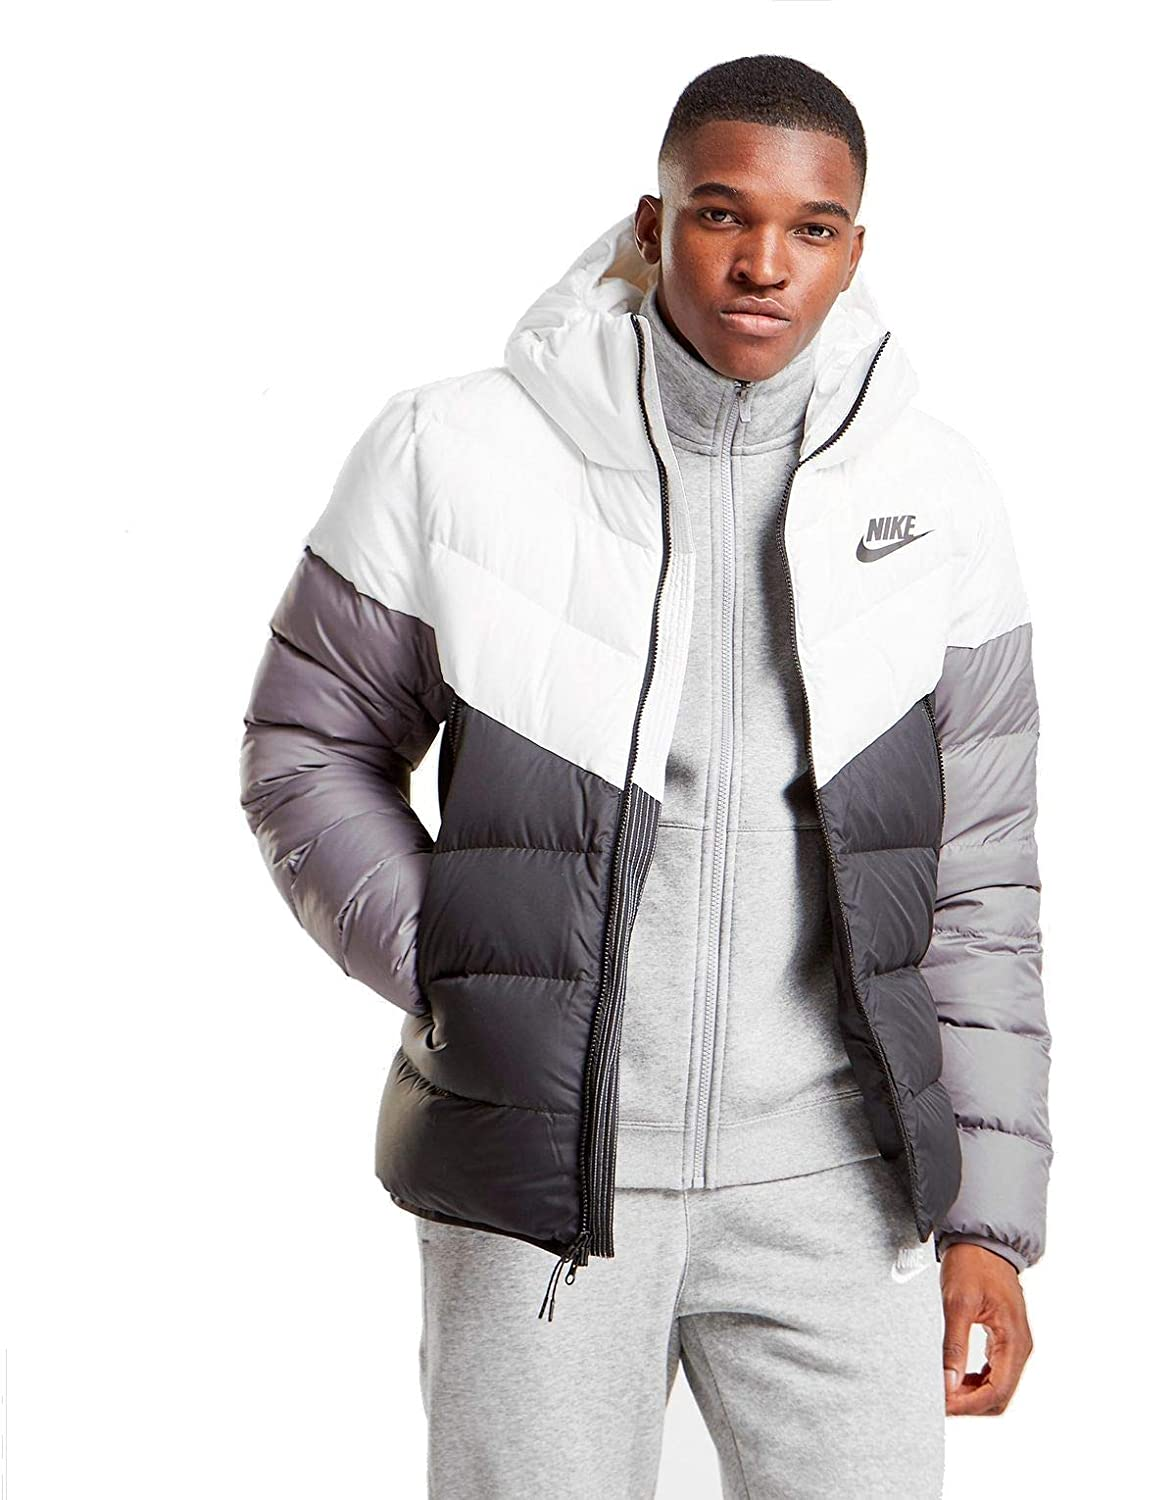 6720c328f0d NIKE Sportswear Windrunner Down Fill Men's Hooded Jacket (White/Black/Grey,  Large) at Amazon Men's Clothing store: